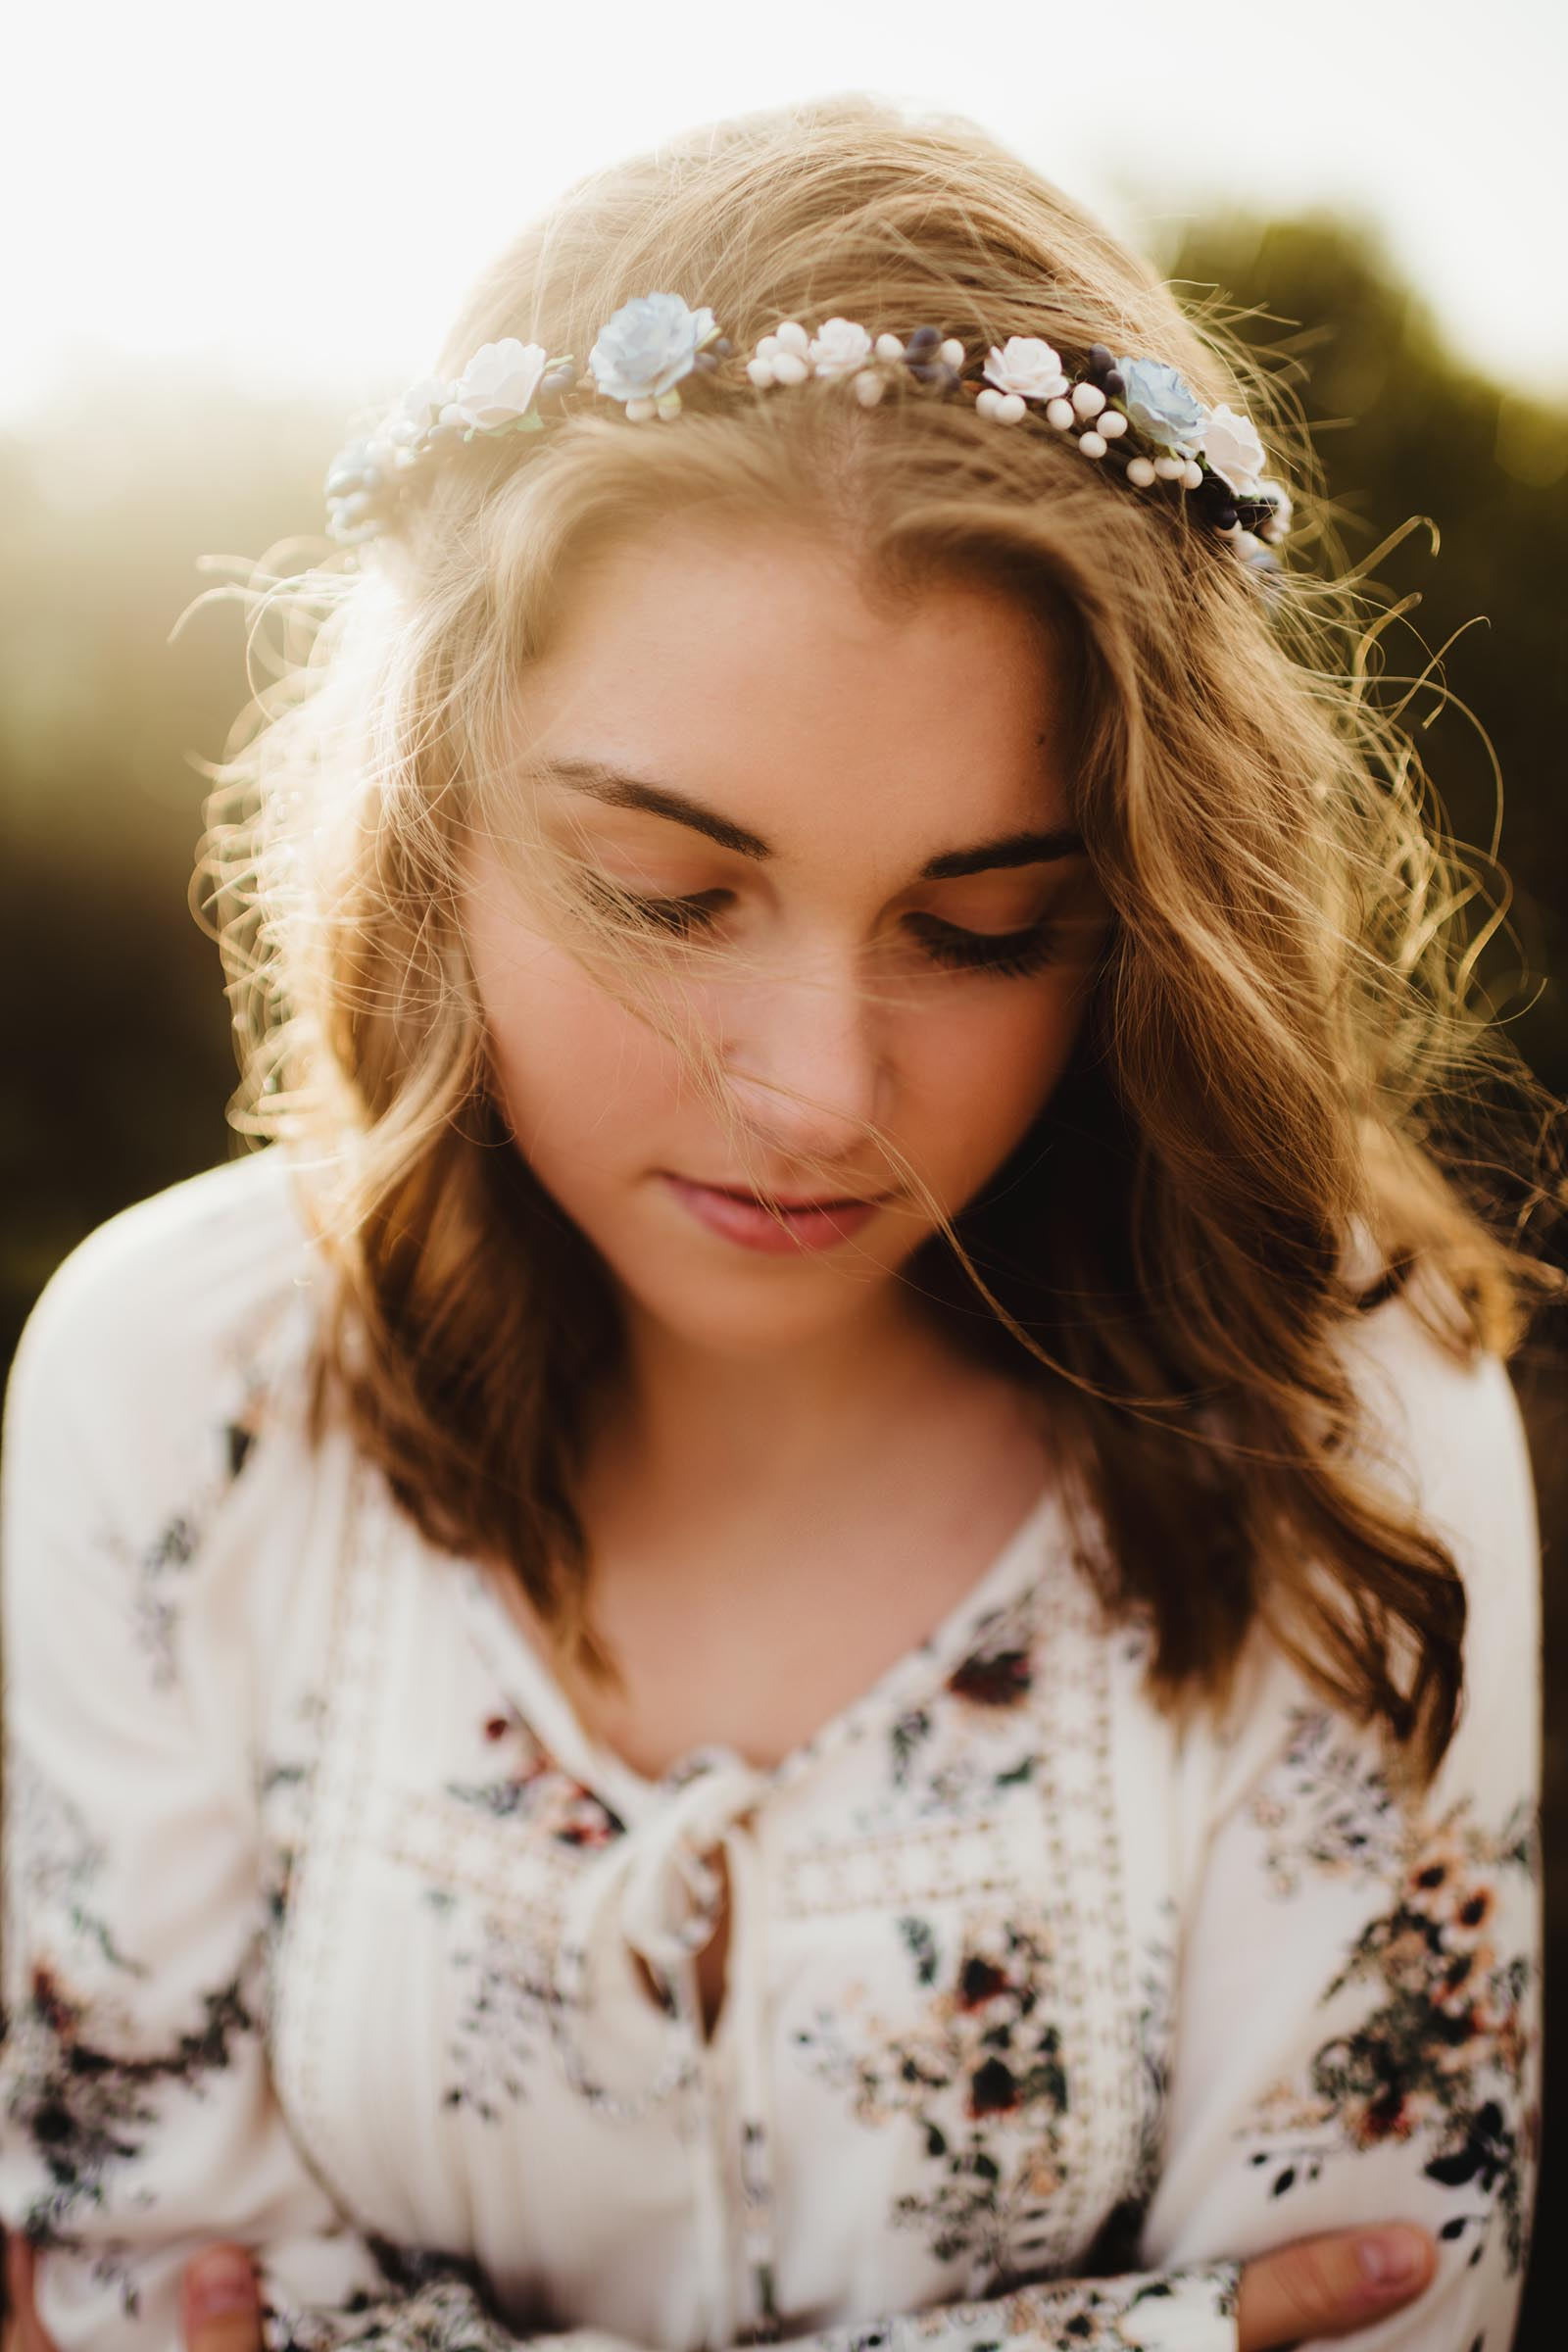 floral crown on a senior girl at sunset